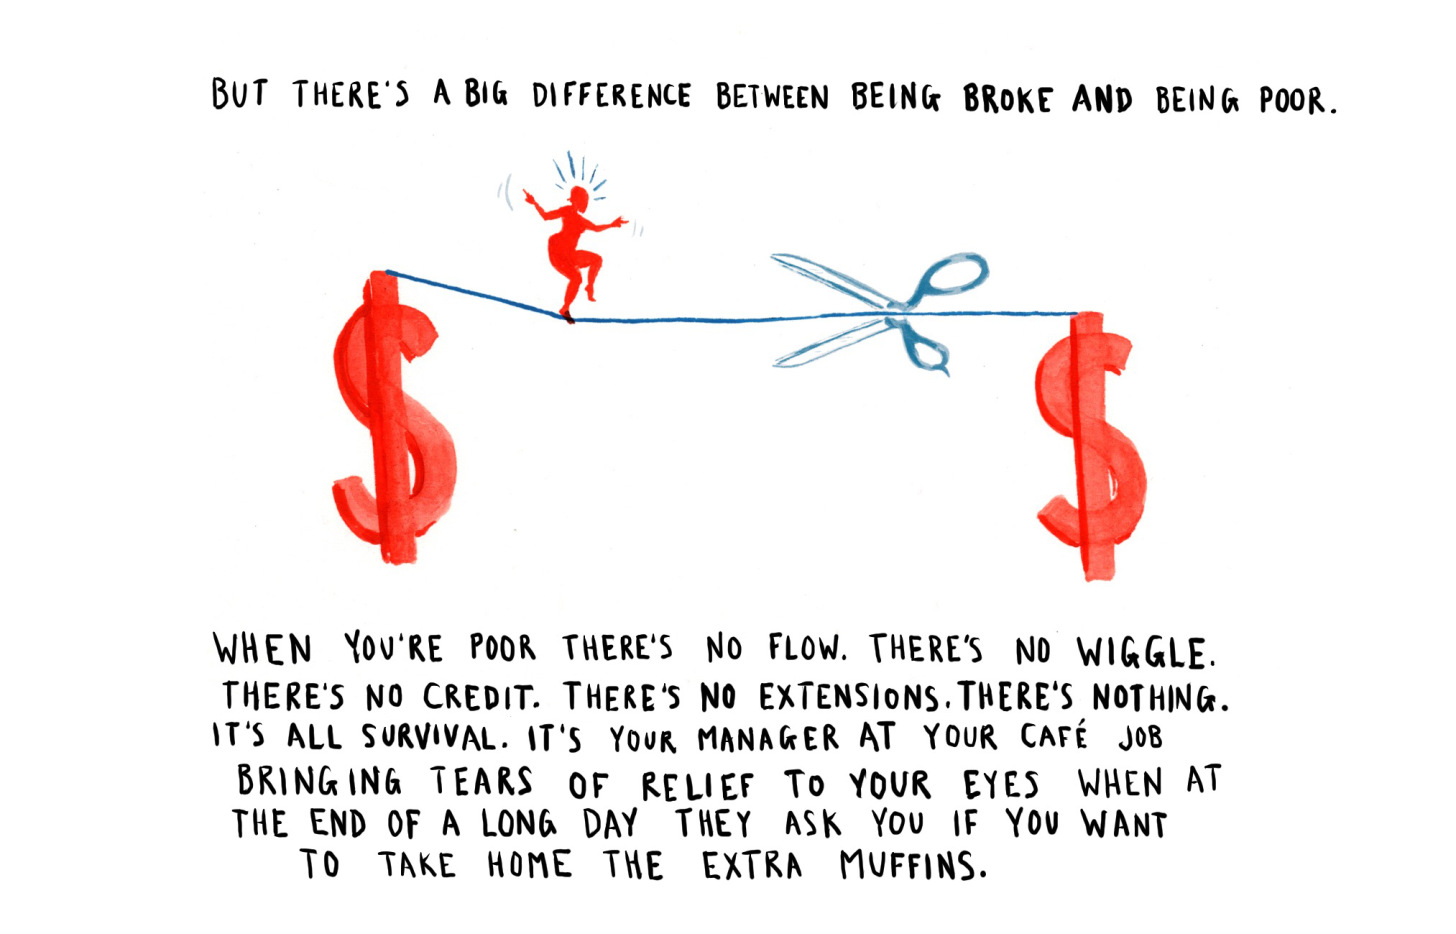 The Difference Between Being Broke and Being Poor